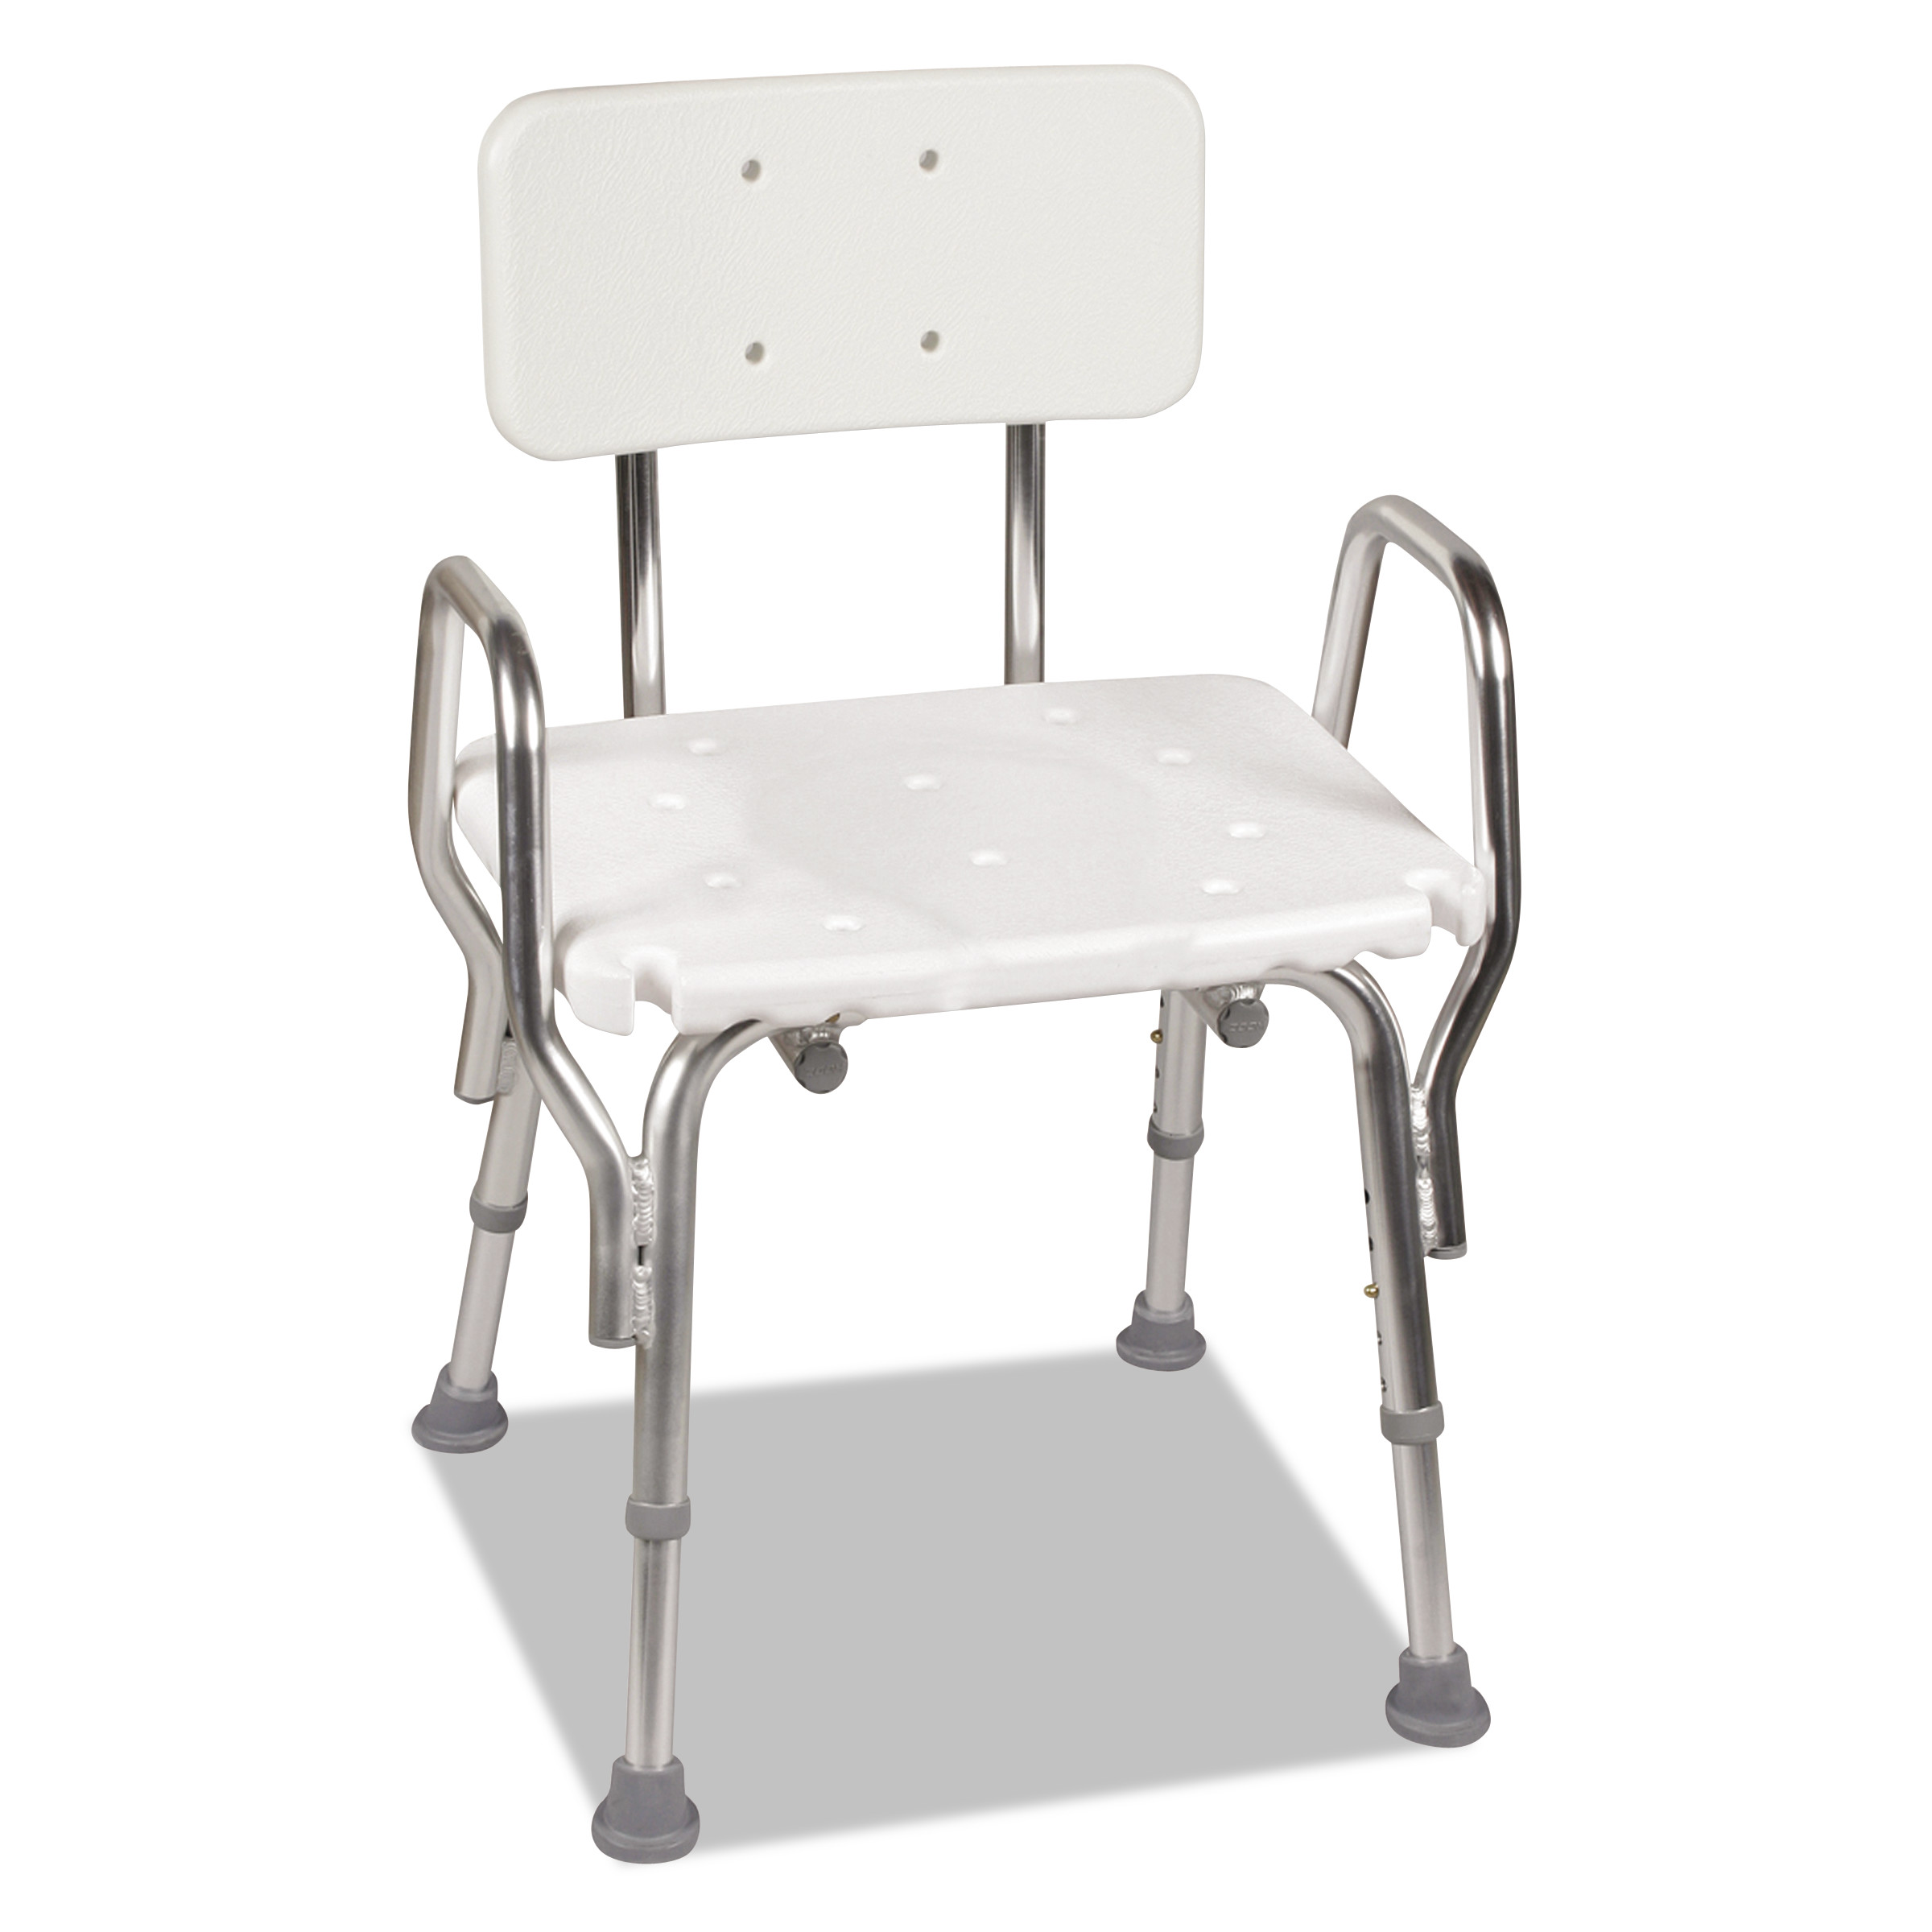 Dmi Shower Chair With Arms White